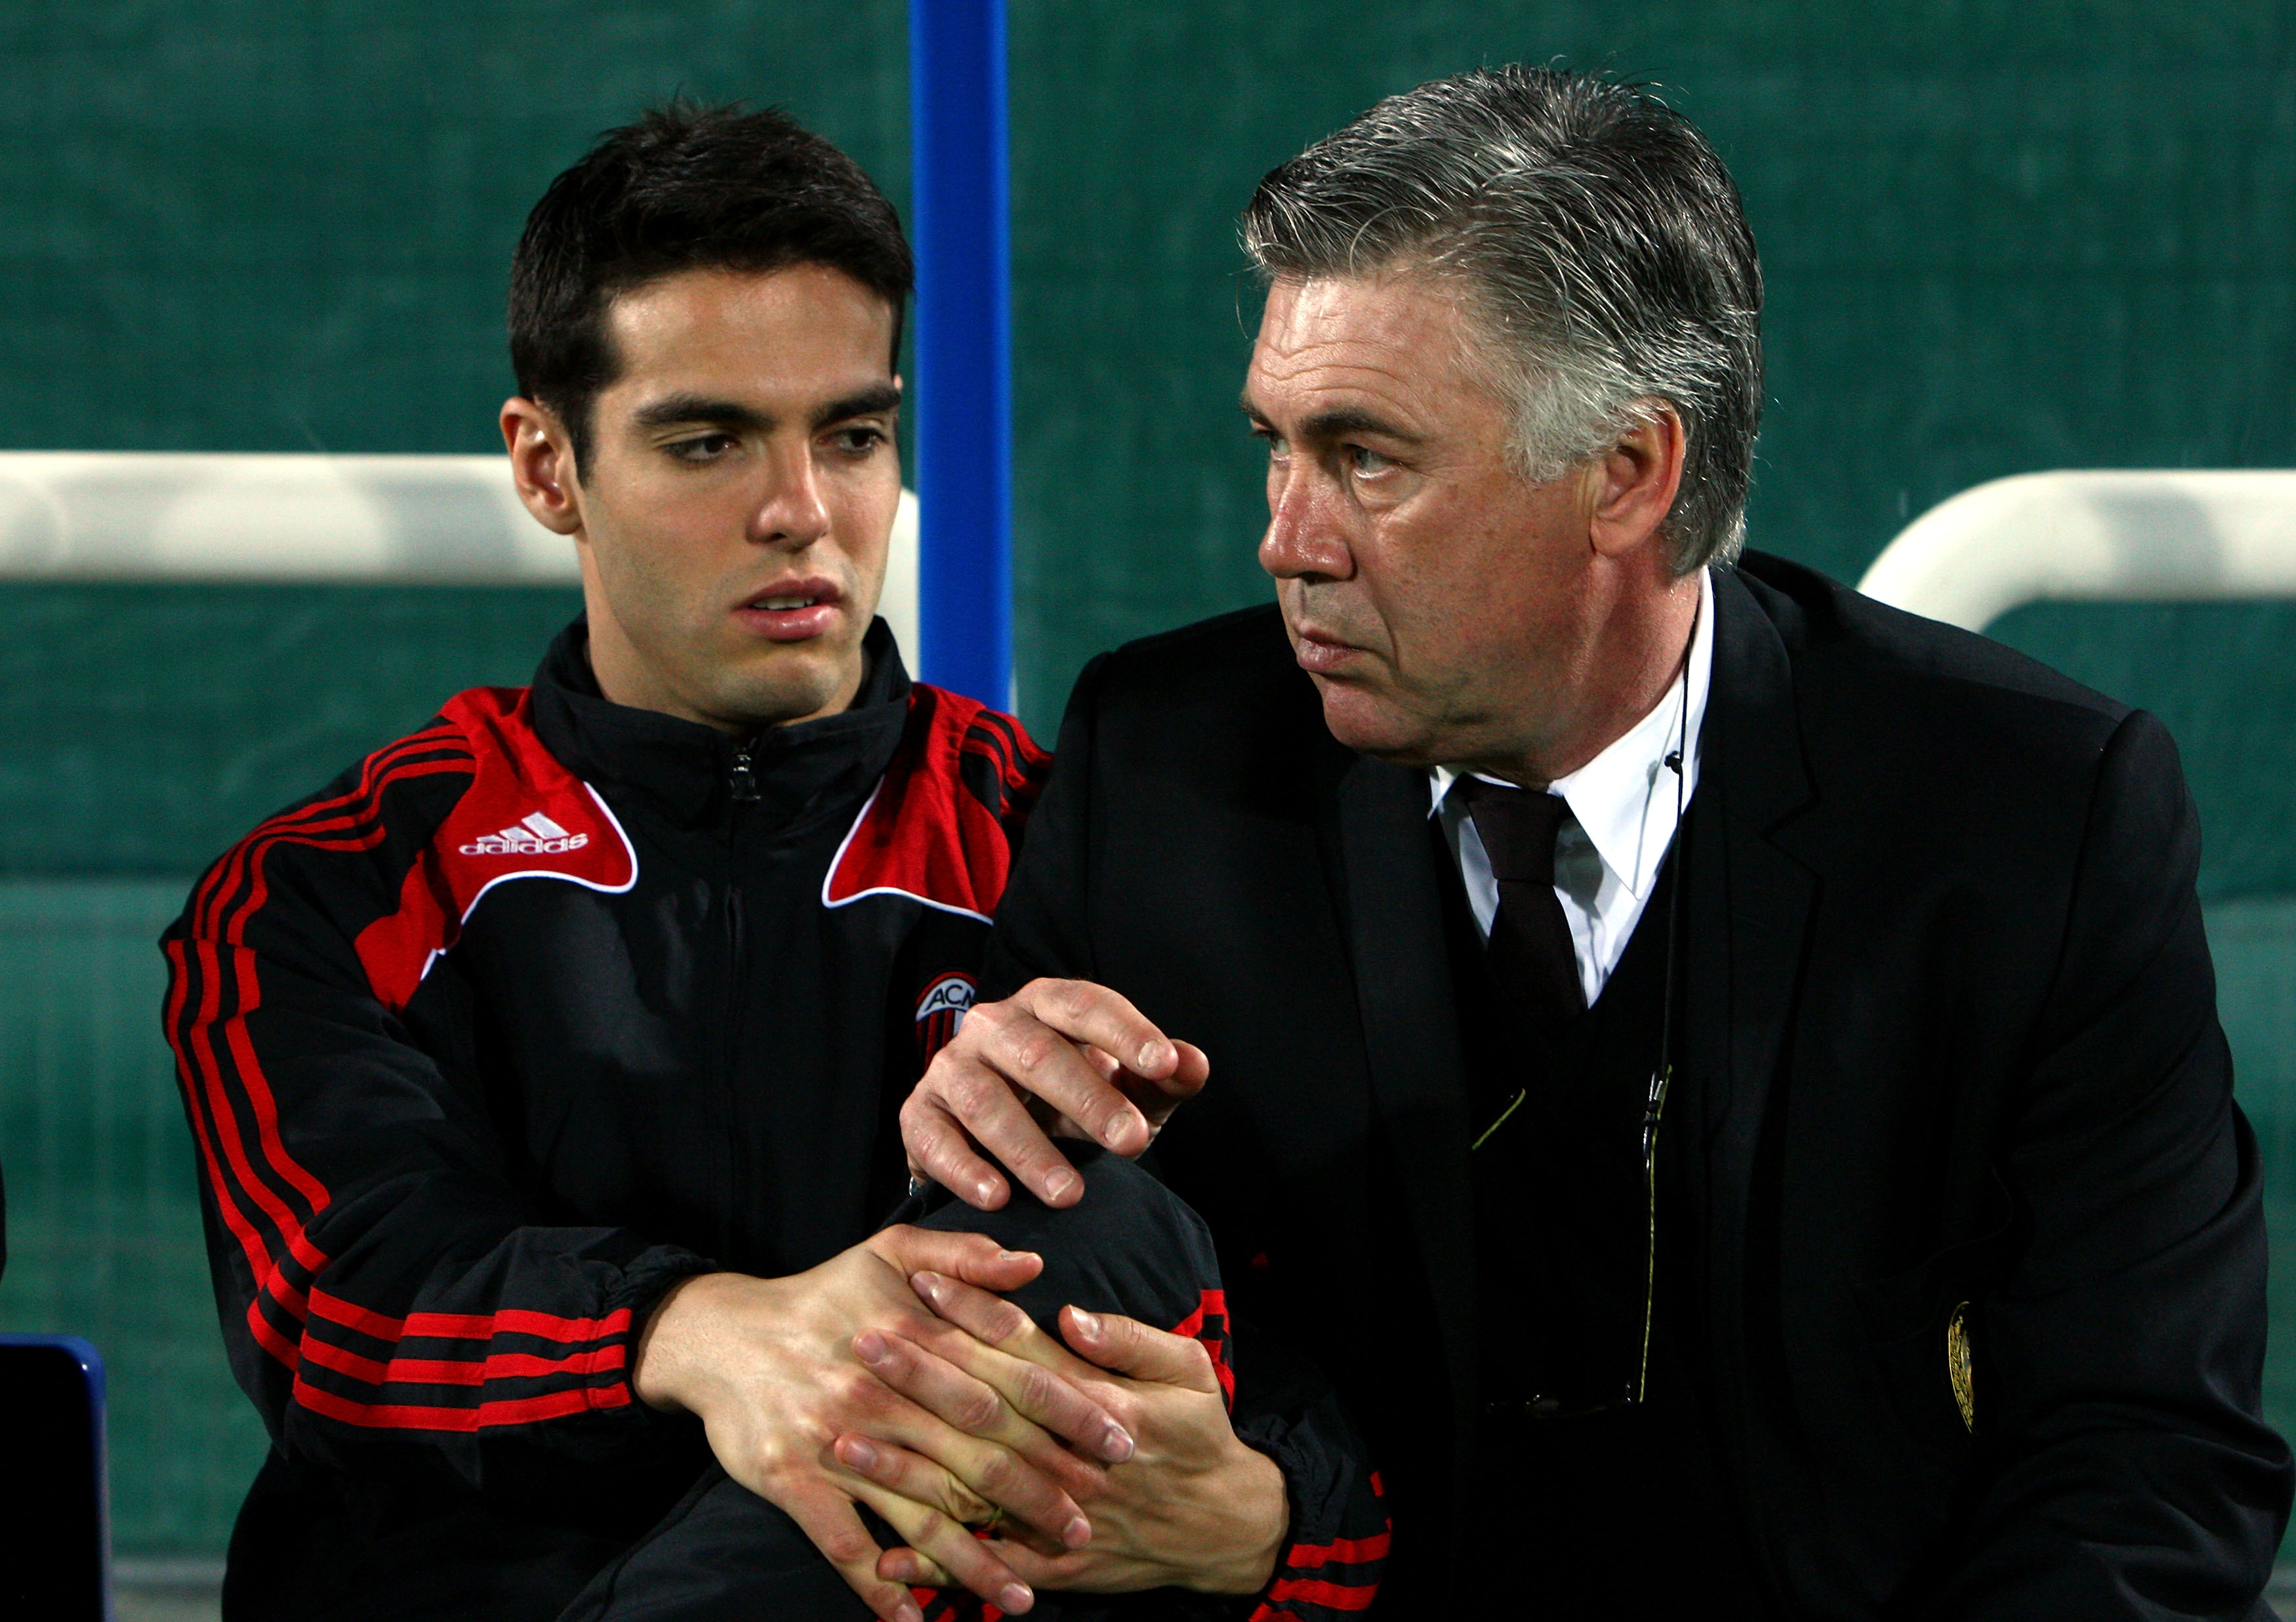 DUBAI, UNITED ARAB EMIRATES - JANUARY 06: Kaka (L) of AC Milan speaks with Carlo Ancelotti (R), manager of AC Milan before the Dubai Football Challenge match between AC Milan and Hamburger SV at The Emirates Sevens Stadium on January 6, 2009 in Dubai, United Arab Emirates. (Photo by Ryan Pierse/Getty Images)